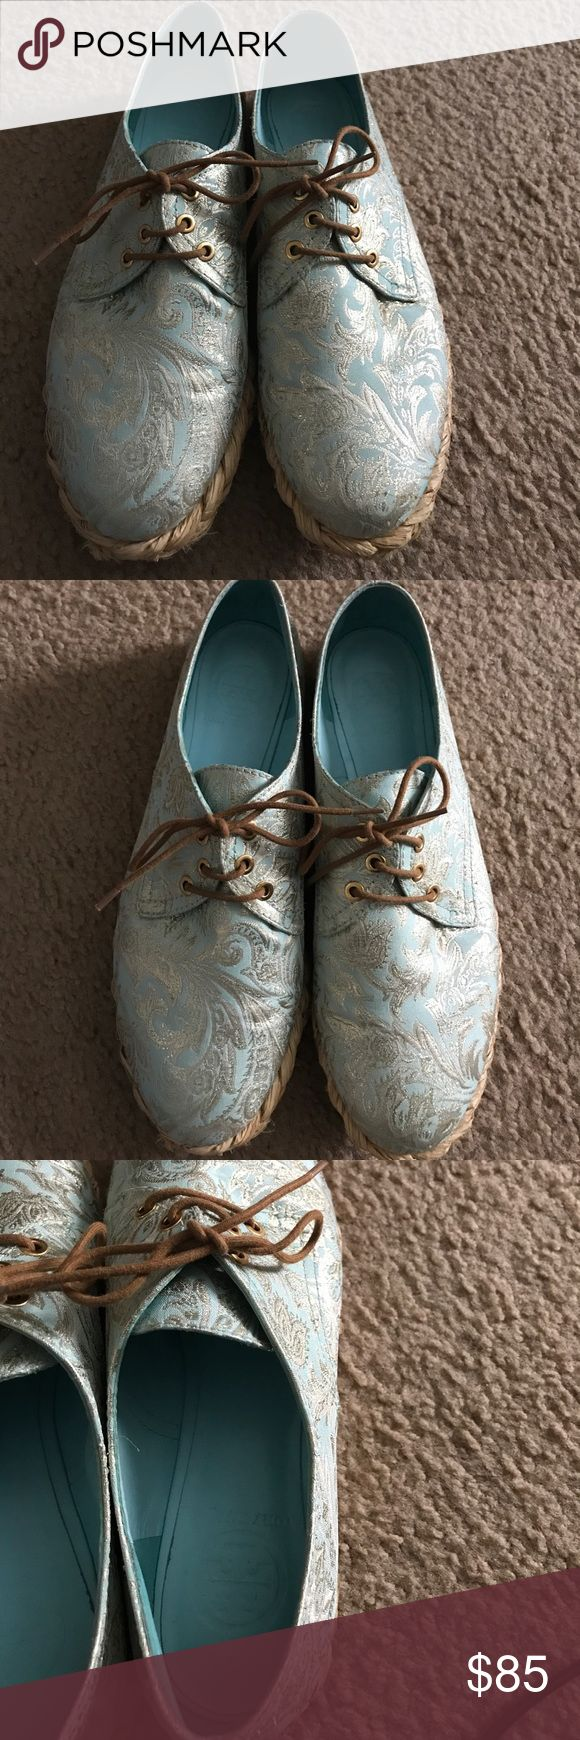 Selling this Mint Jacquard Lace Shoes on Poshmark! My username is:  nik2mac2. #